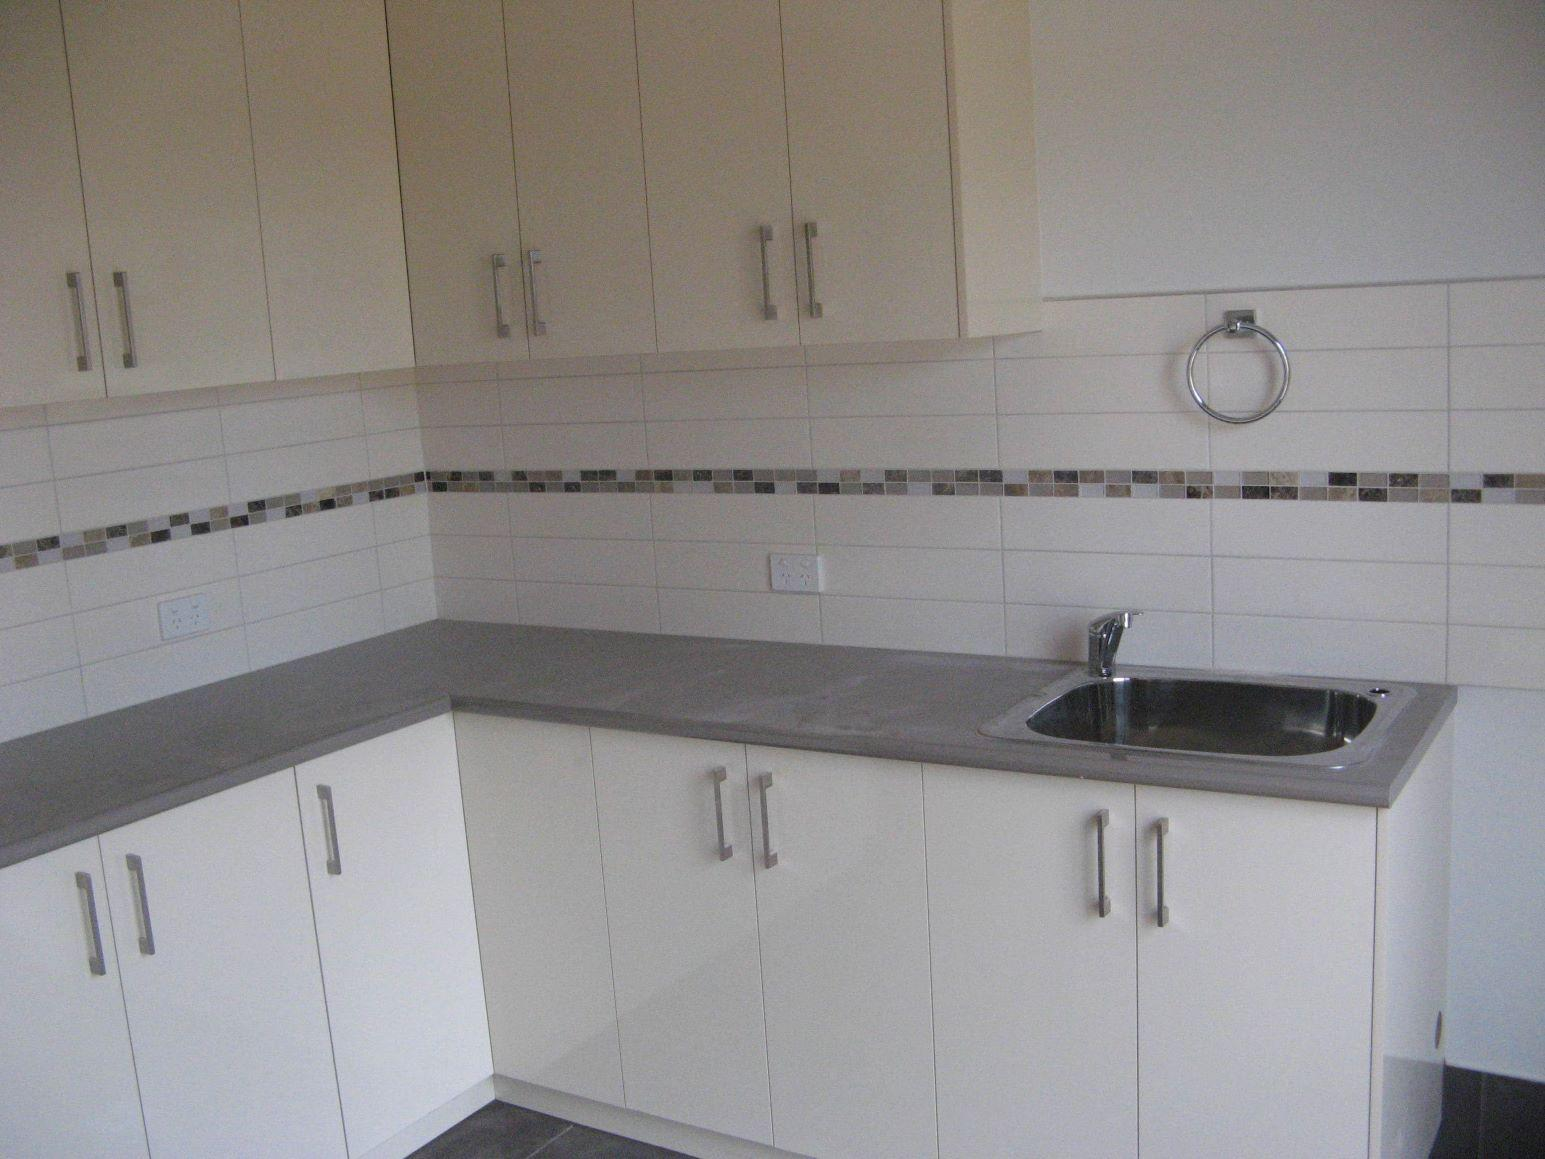 Built in Laundries - Chinchilla Kitchens 06